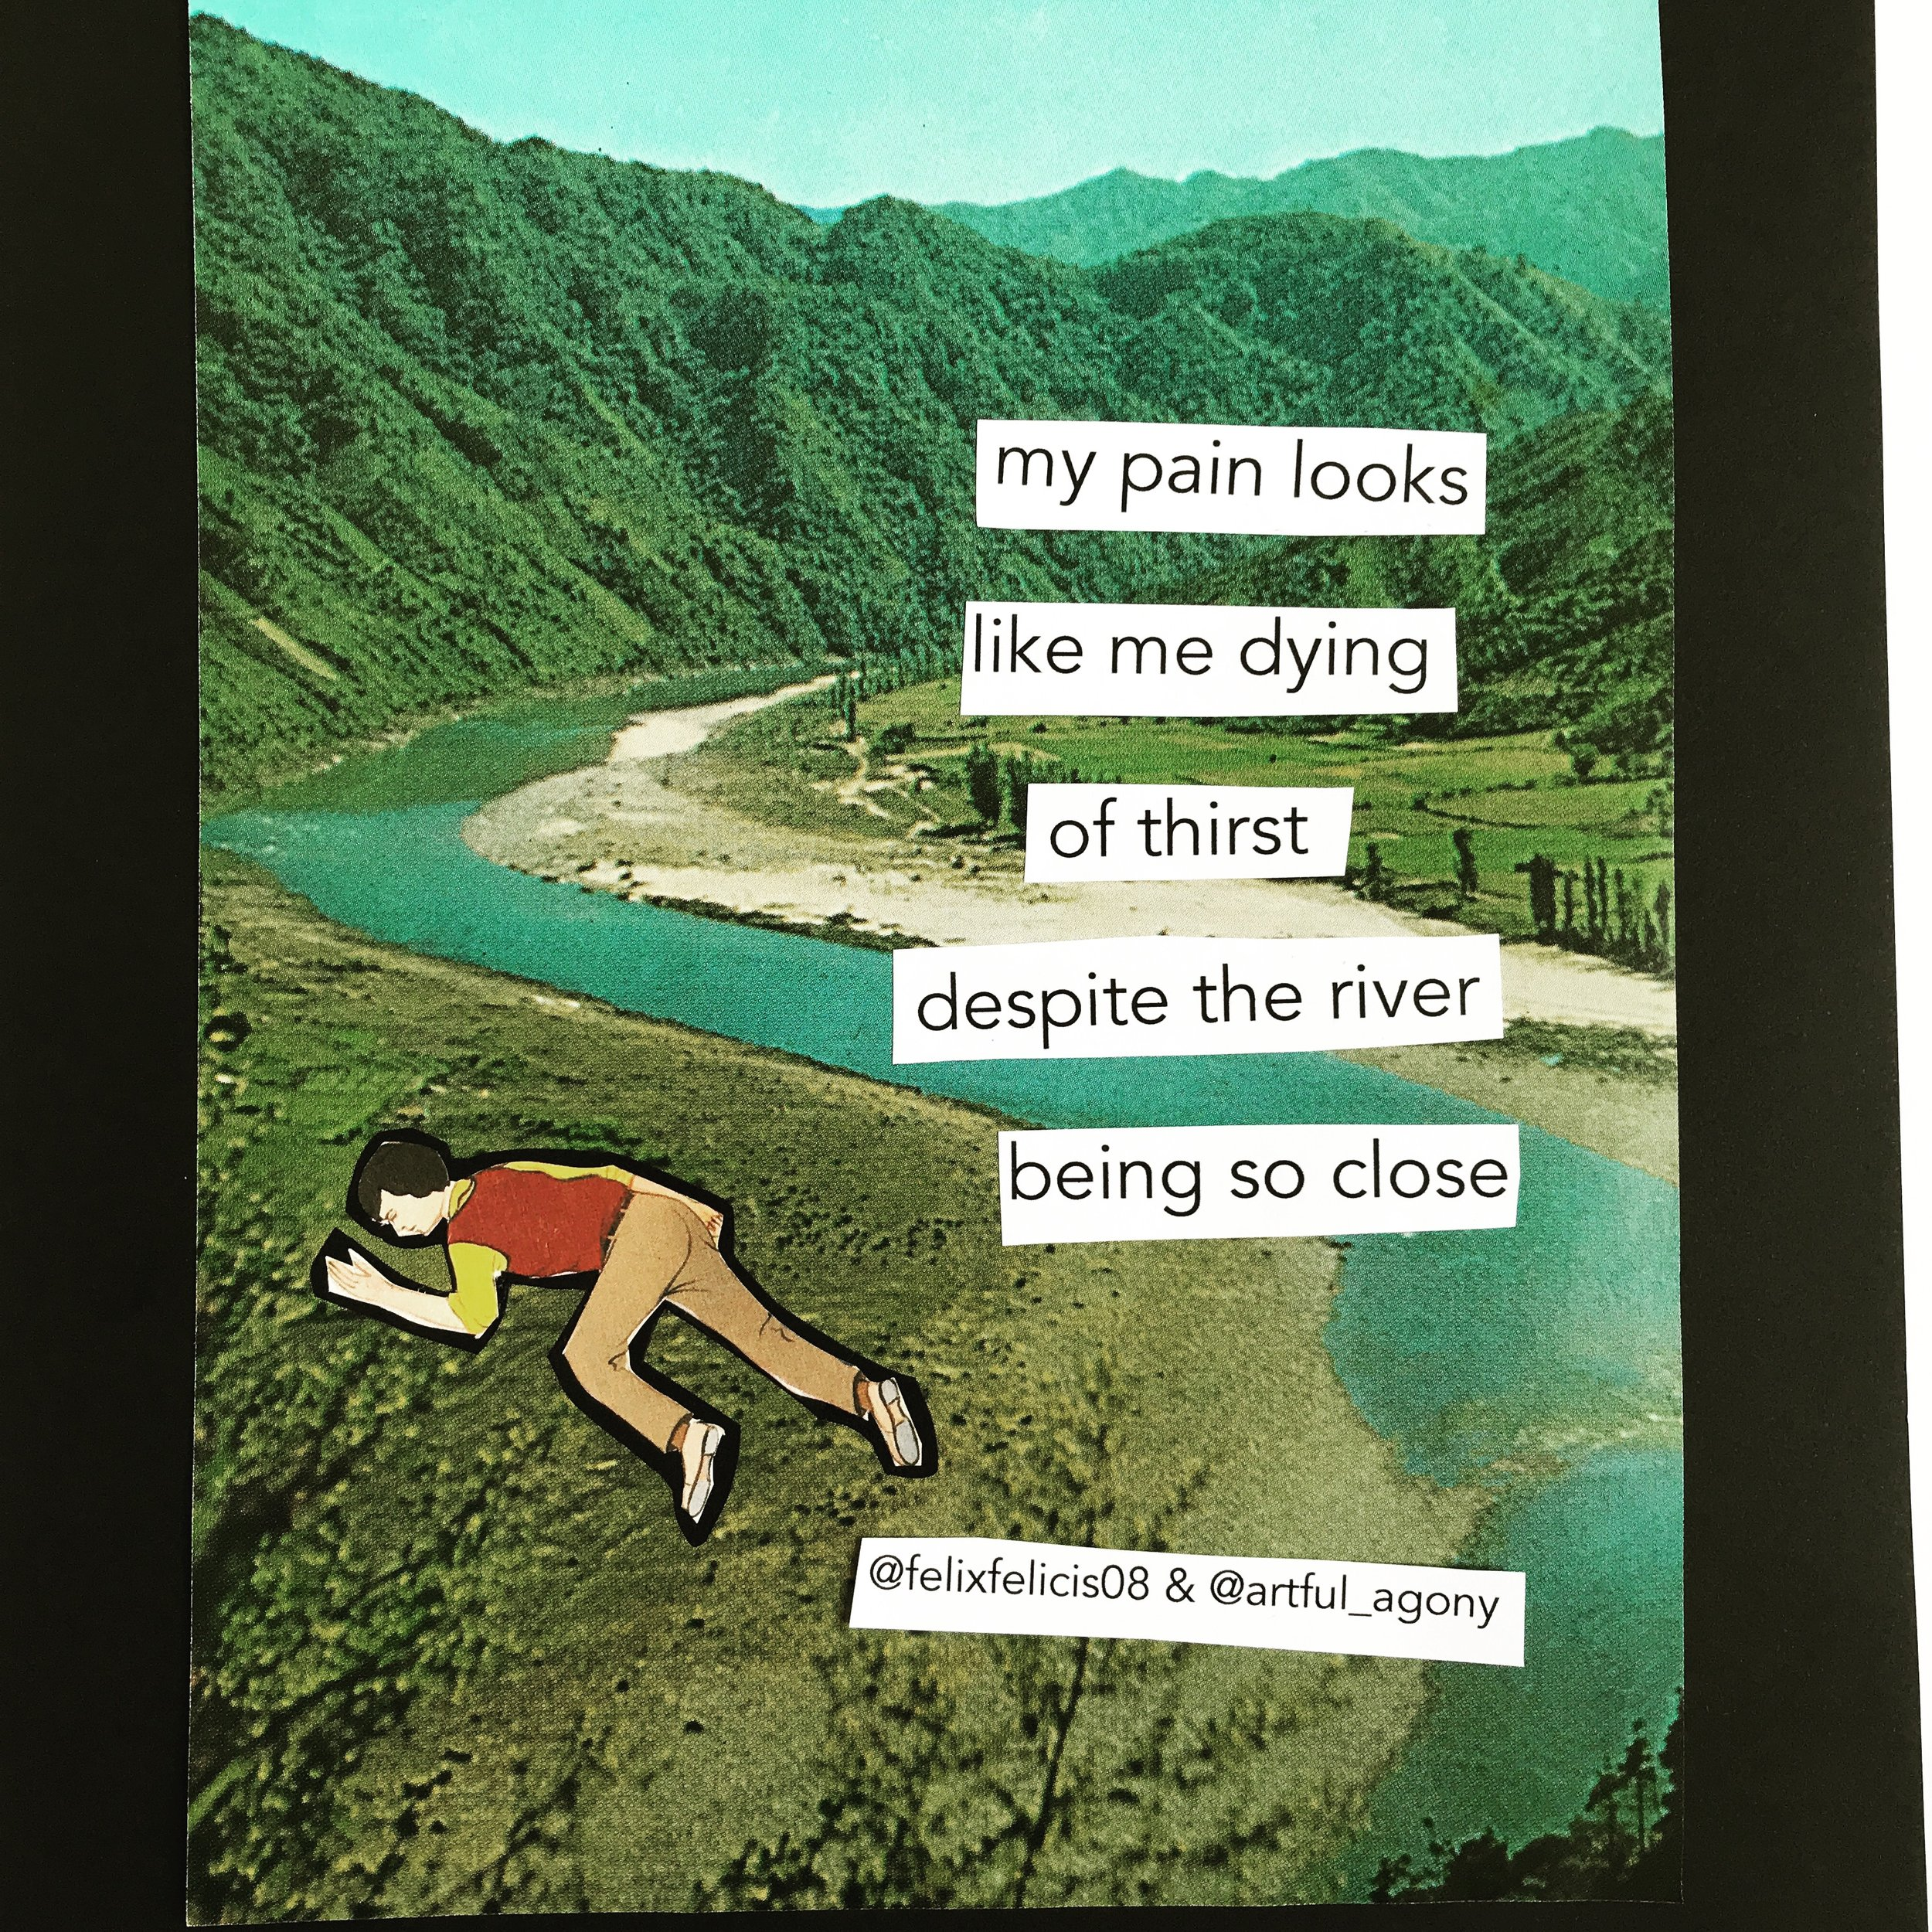 DYING OF THIRST  'My pain looks like me dying of thirst despite the river being so close.'  submitted by @felixfelicis08